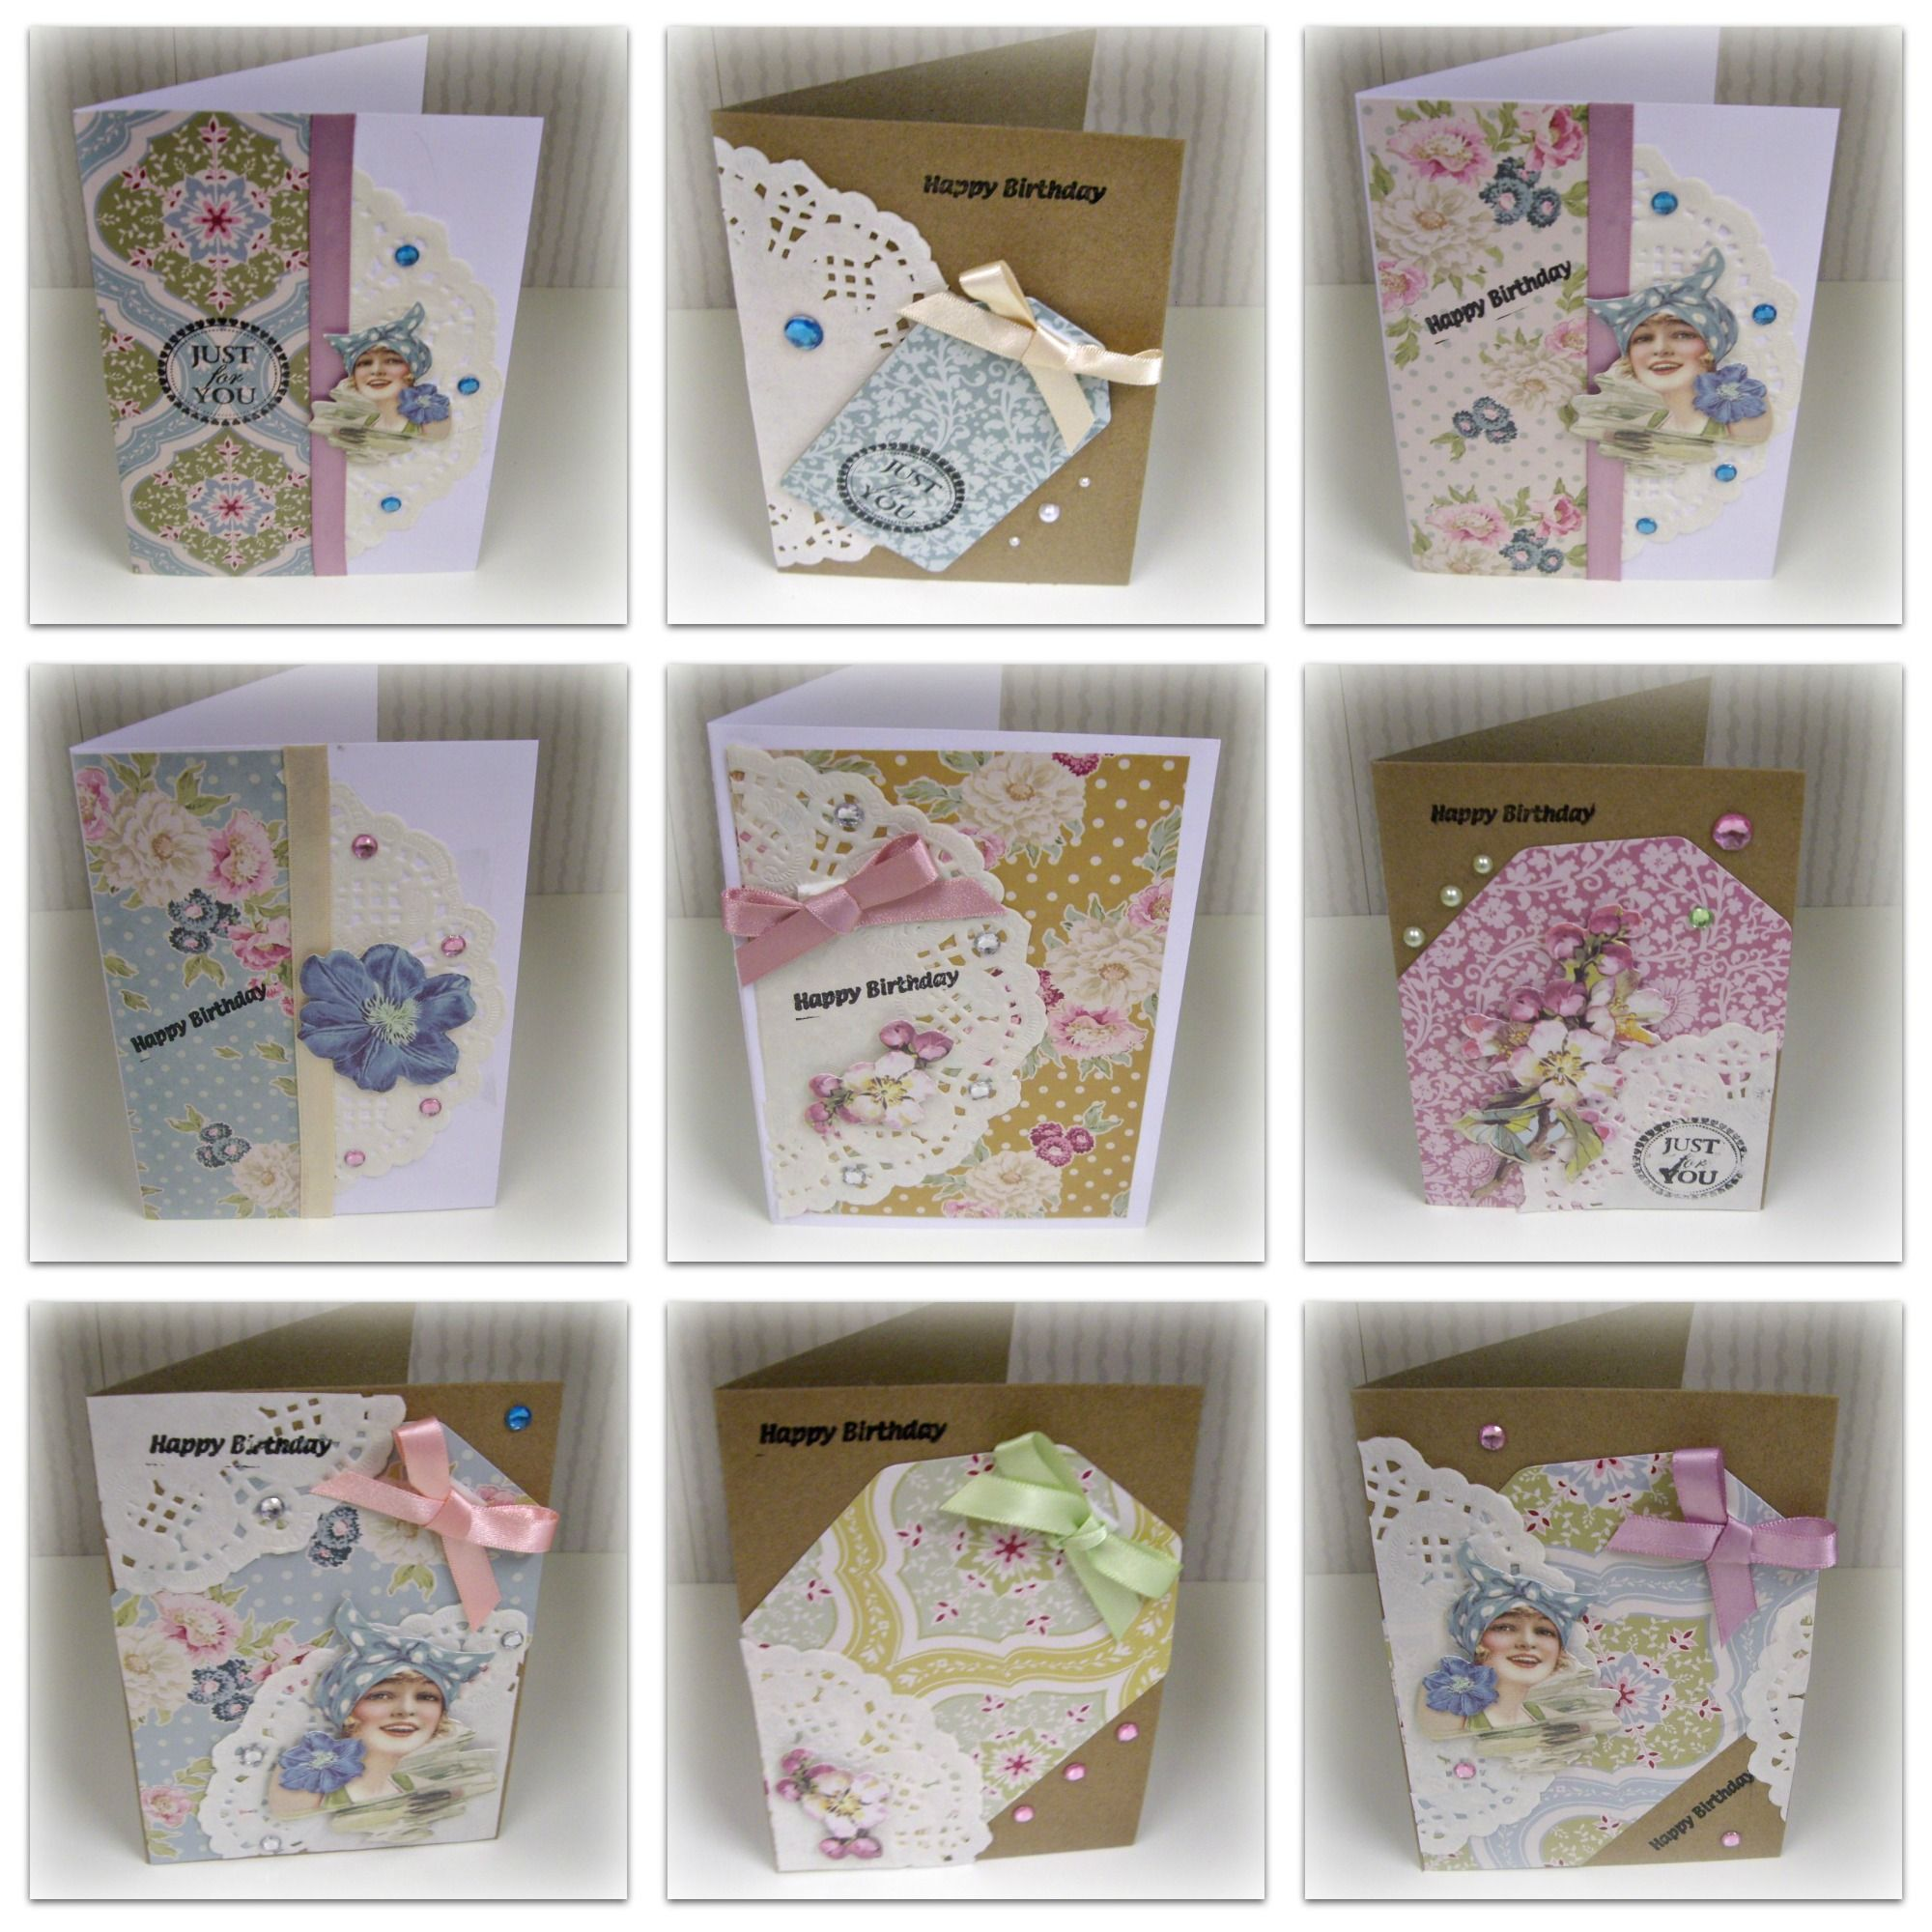 A selection of handmade cards